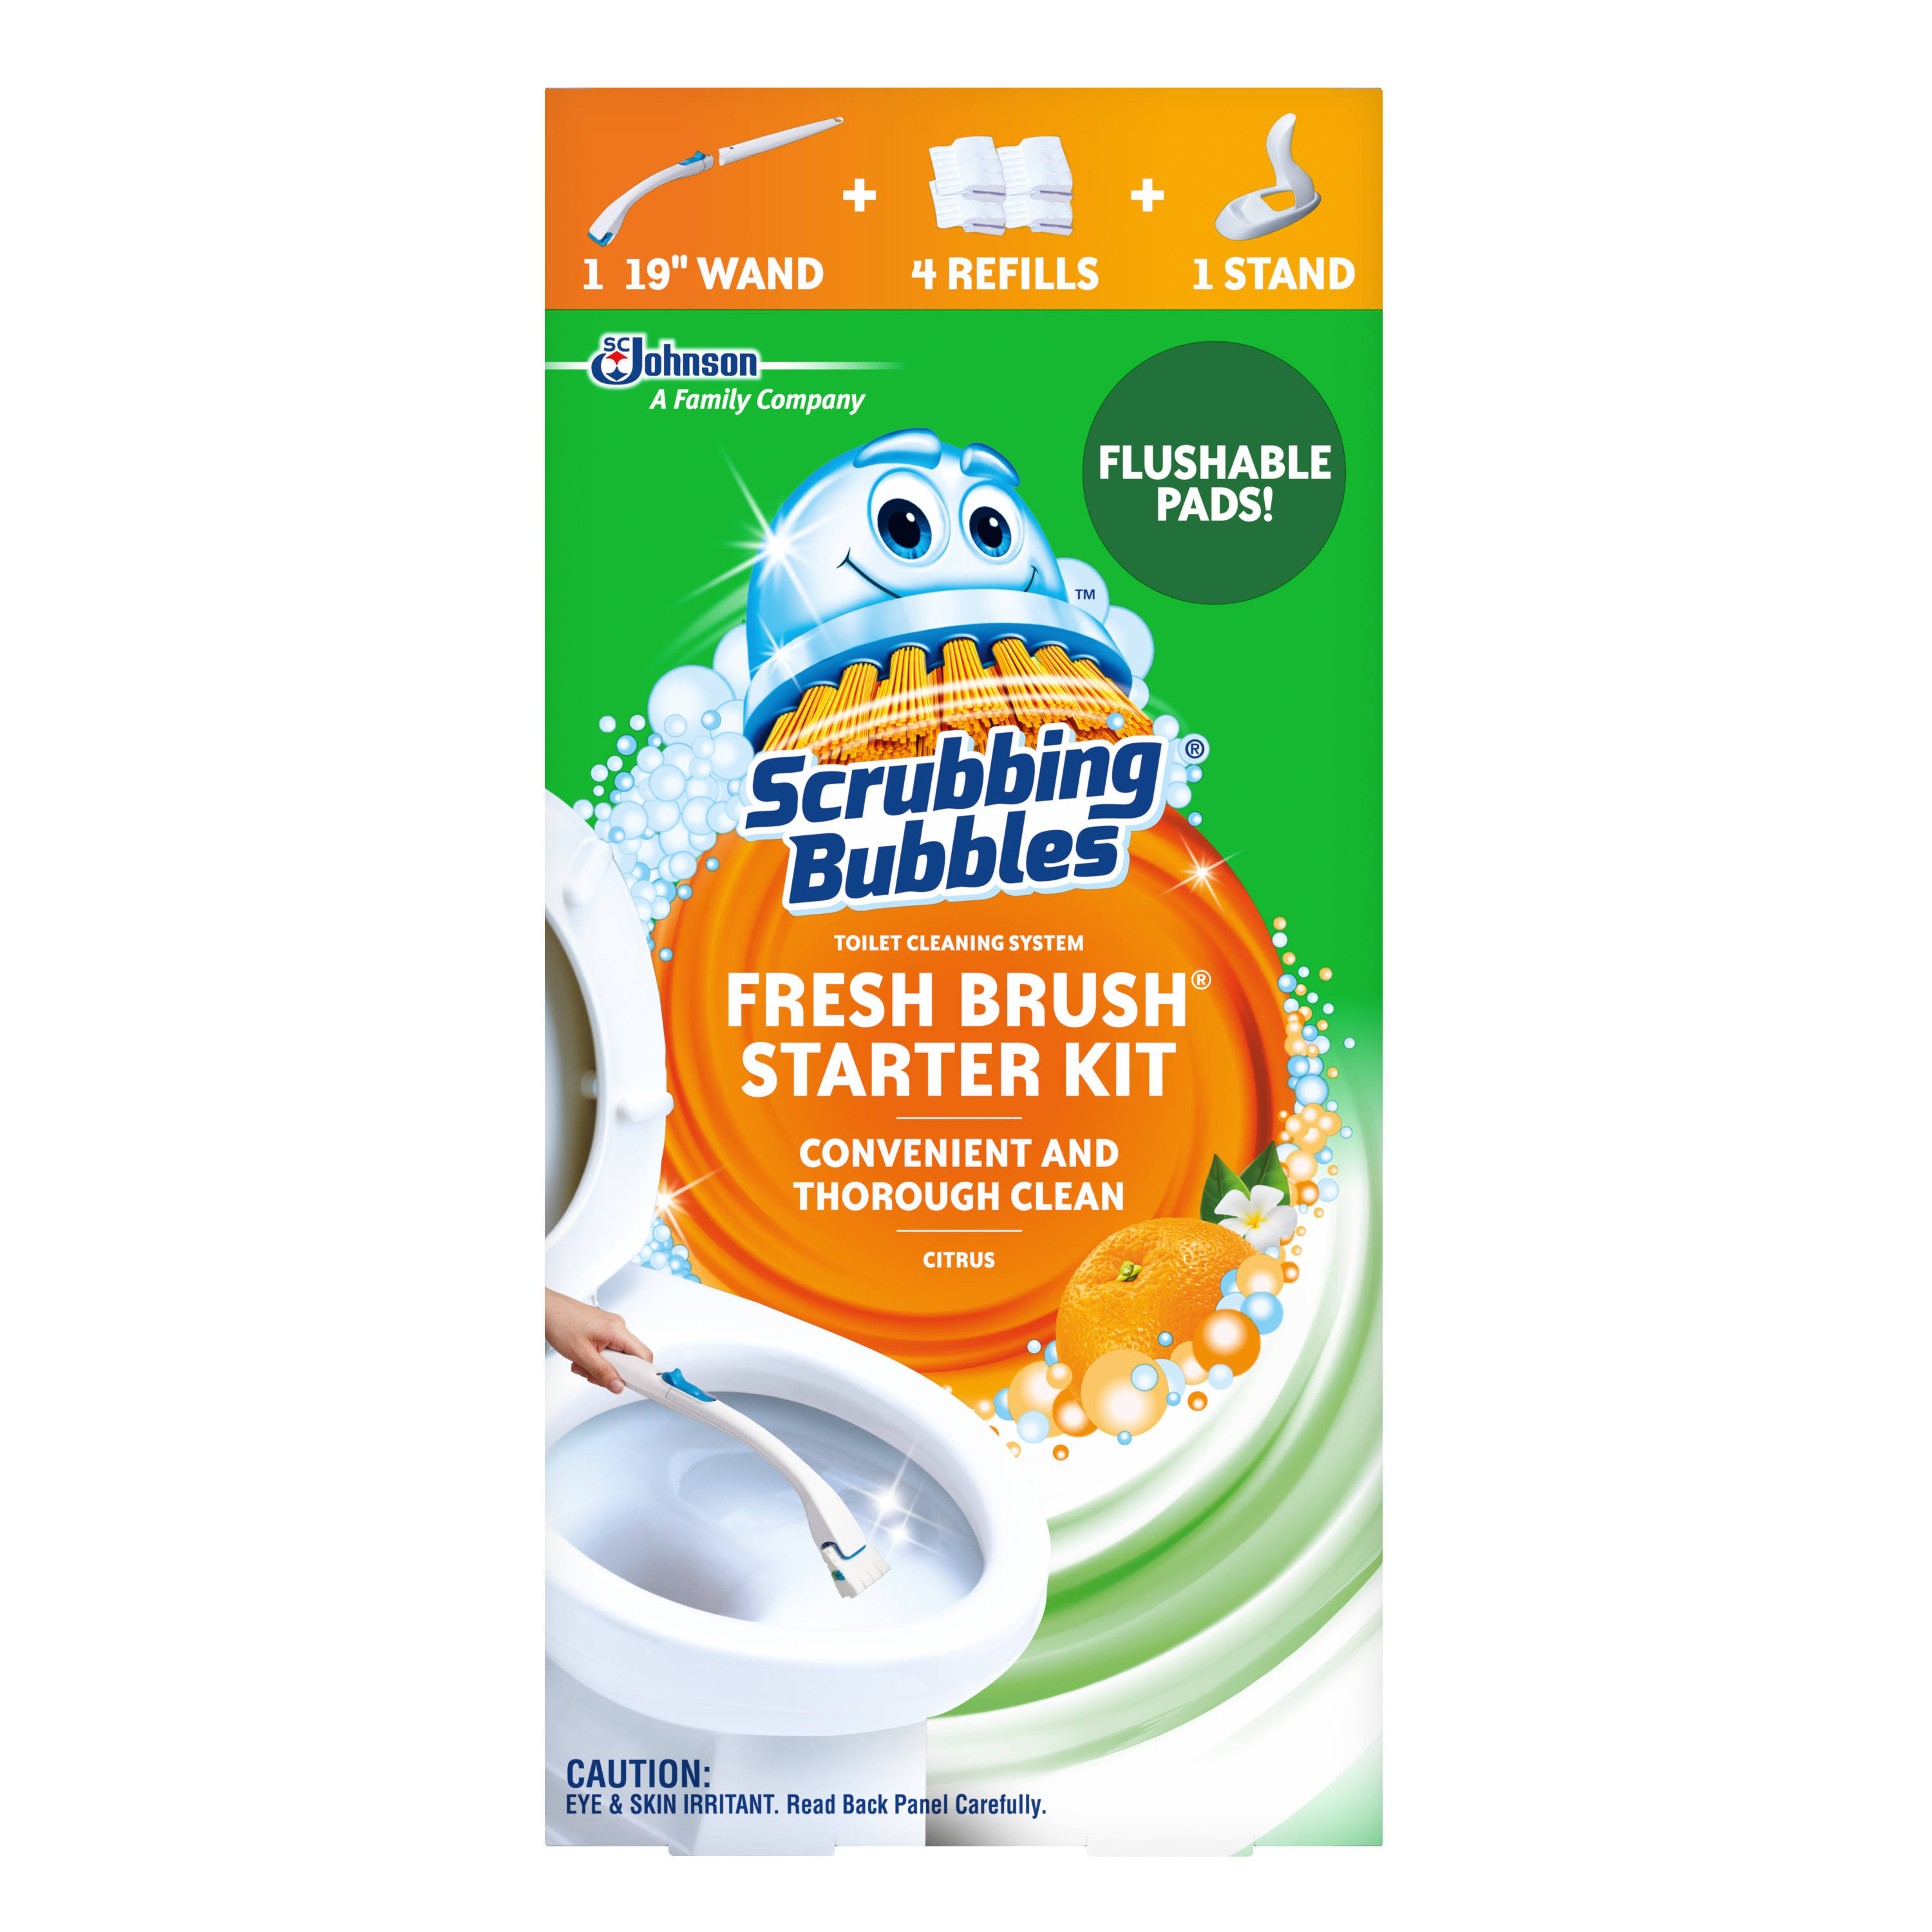 Scrubbing Bubbles Fresh Brush Toilet Cleaning System Starter Kit - Citrus